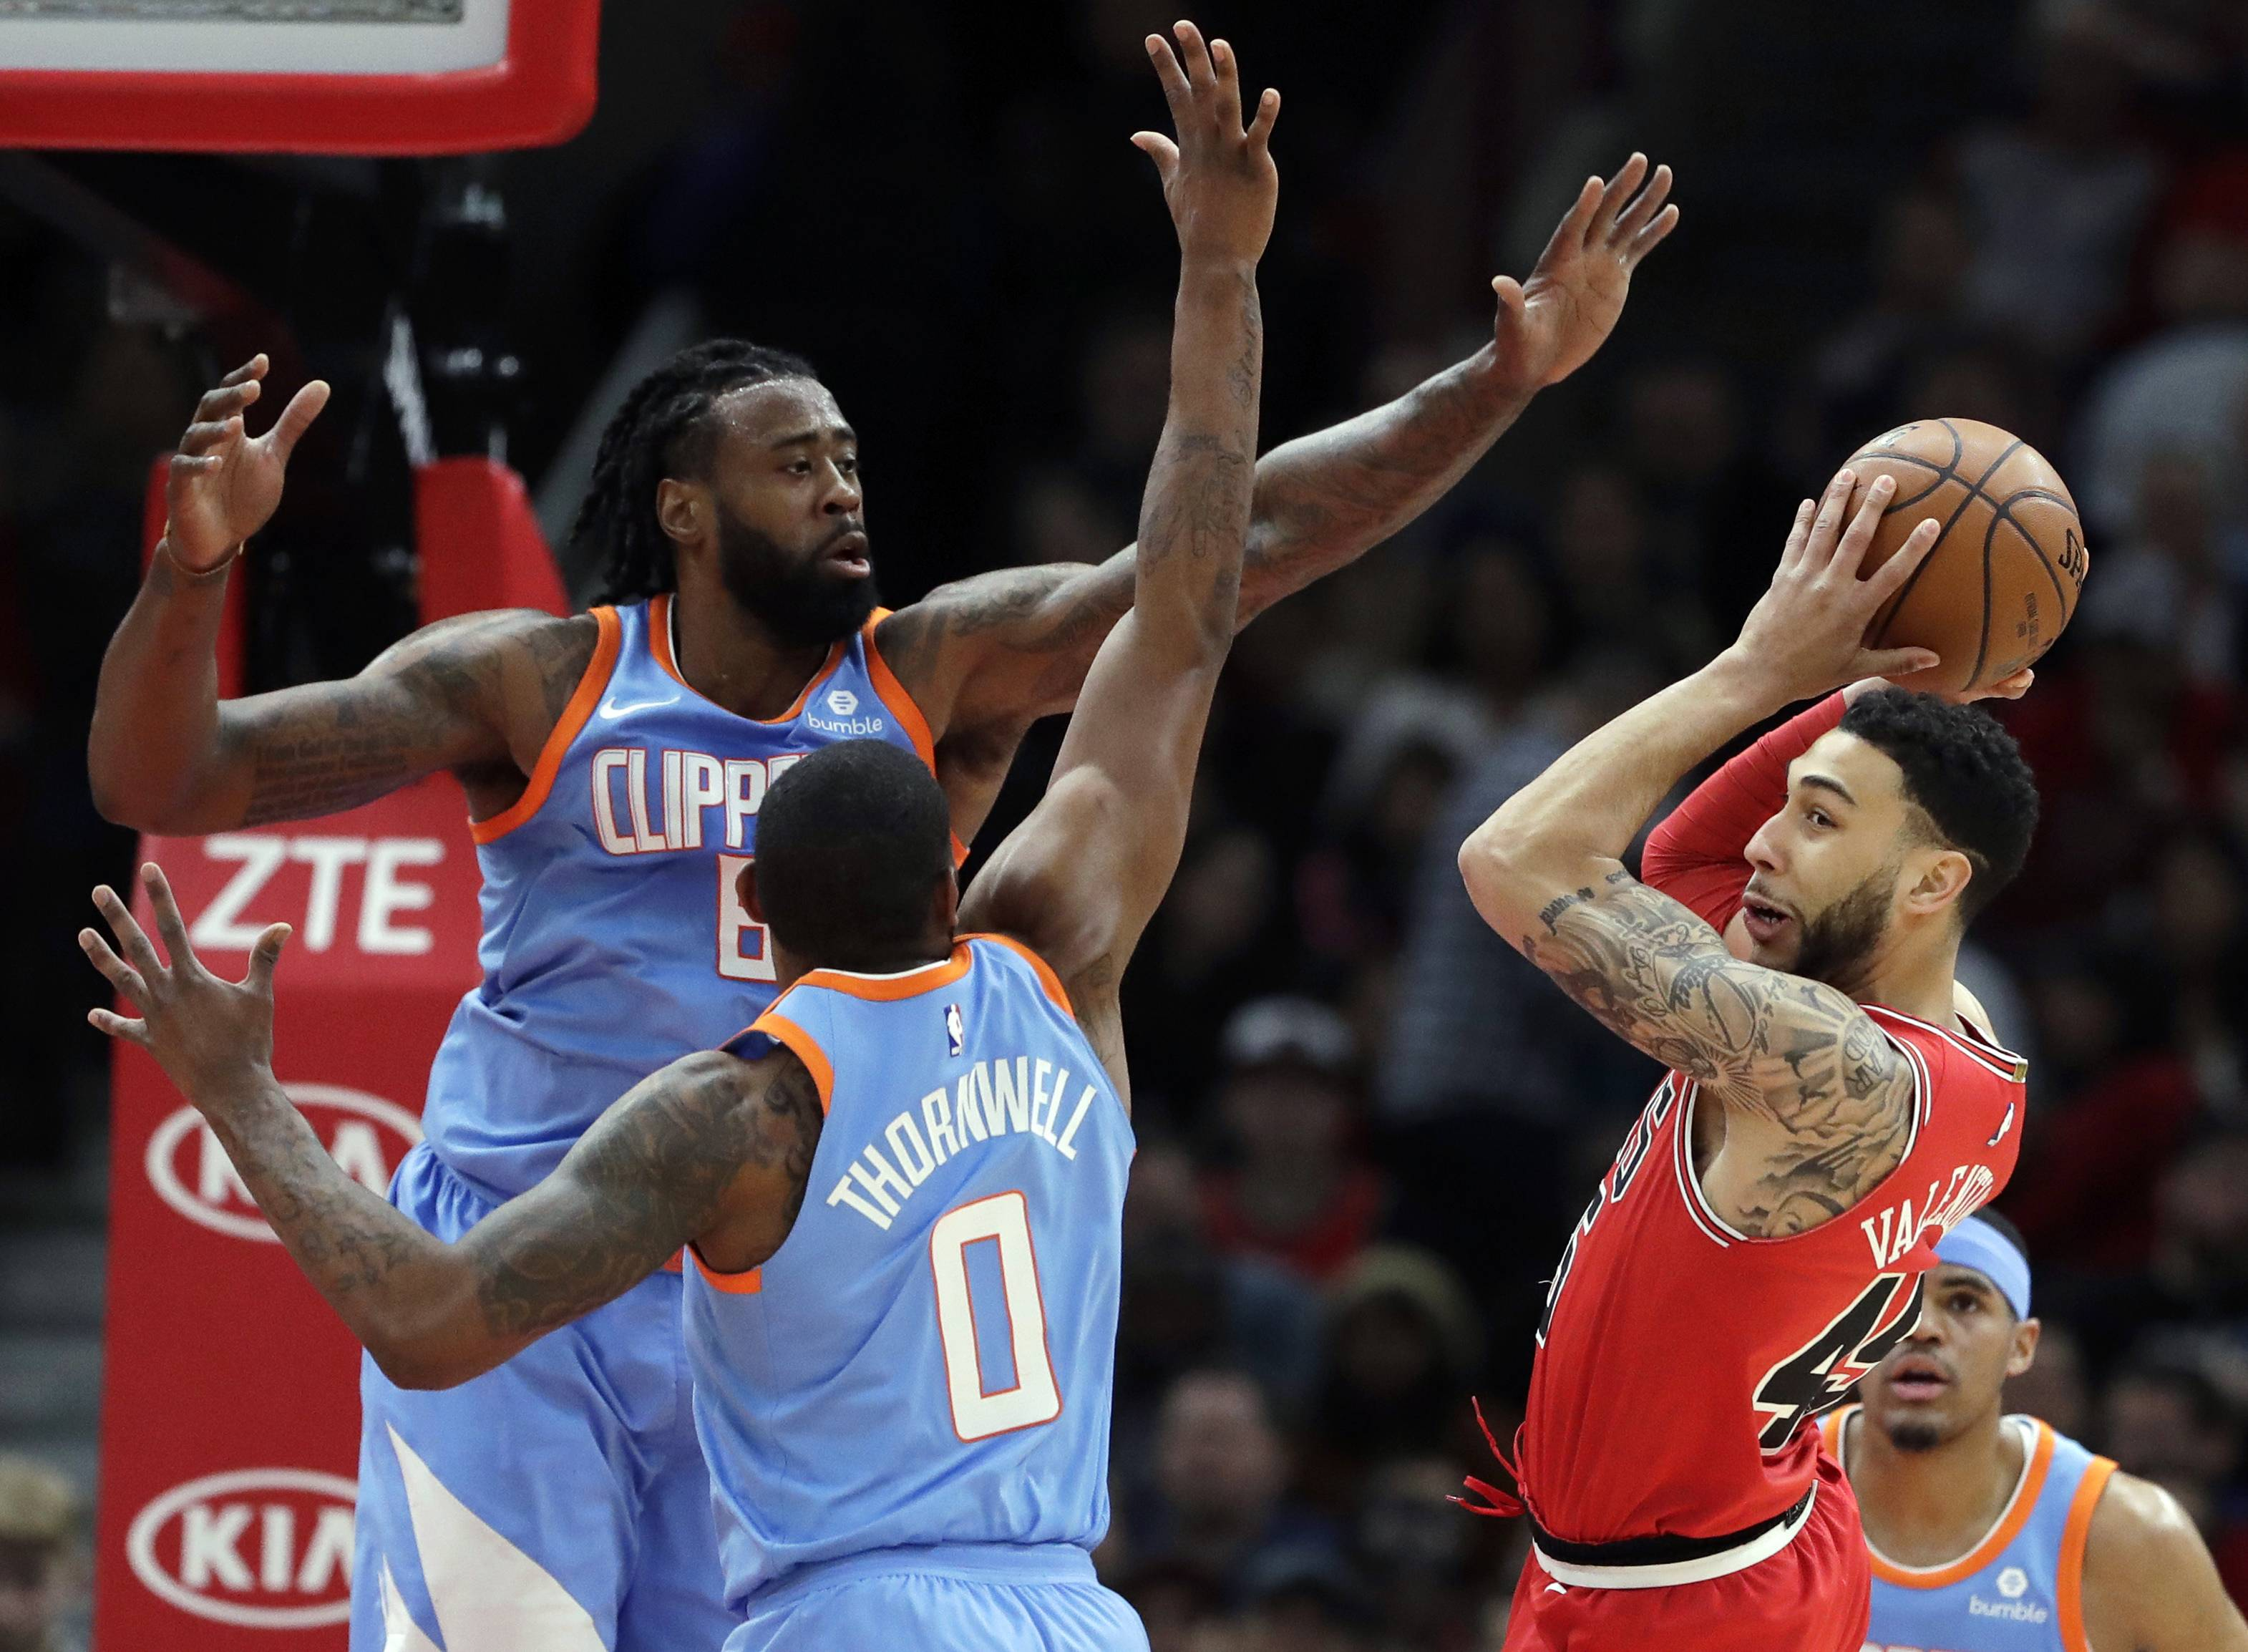 Chicago Bulls guard Denzel Valentine, right, looks to pass against Los Angeles Clippers forward Sindarius Thornwell (0) and center DeAndre Jordan during the first half of an NBA basketball game, Tuesday, March 13, 2018, in Chicago. (AP Photo/Nam Y. Huh)